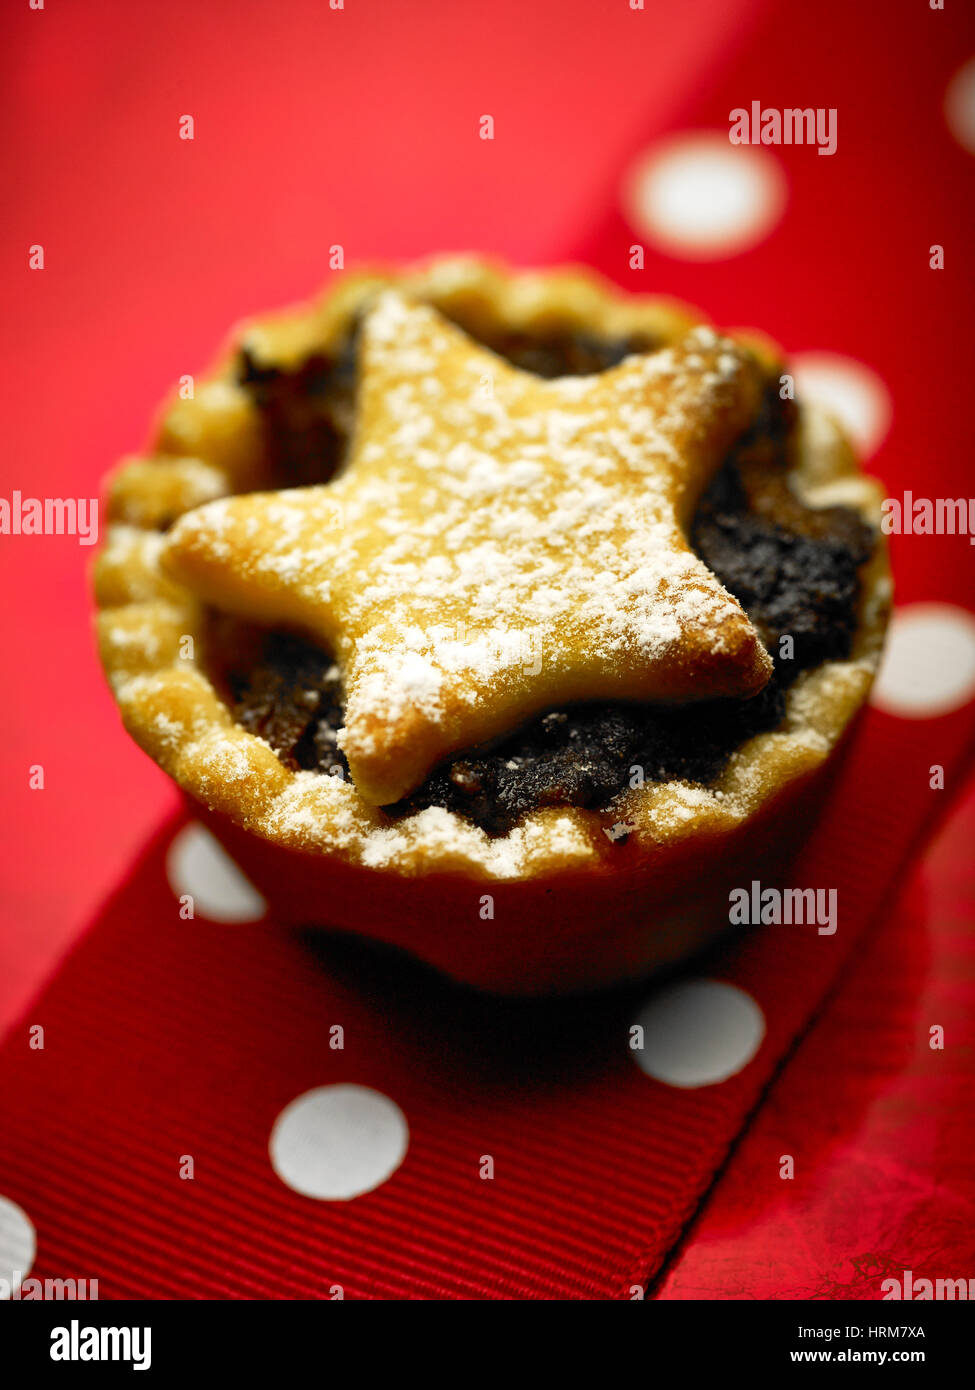 Chrismas Obstkuchen Stockbild